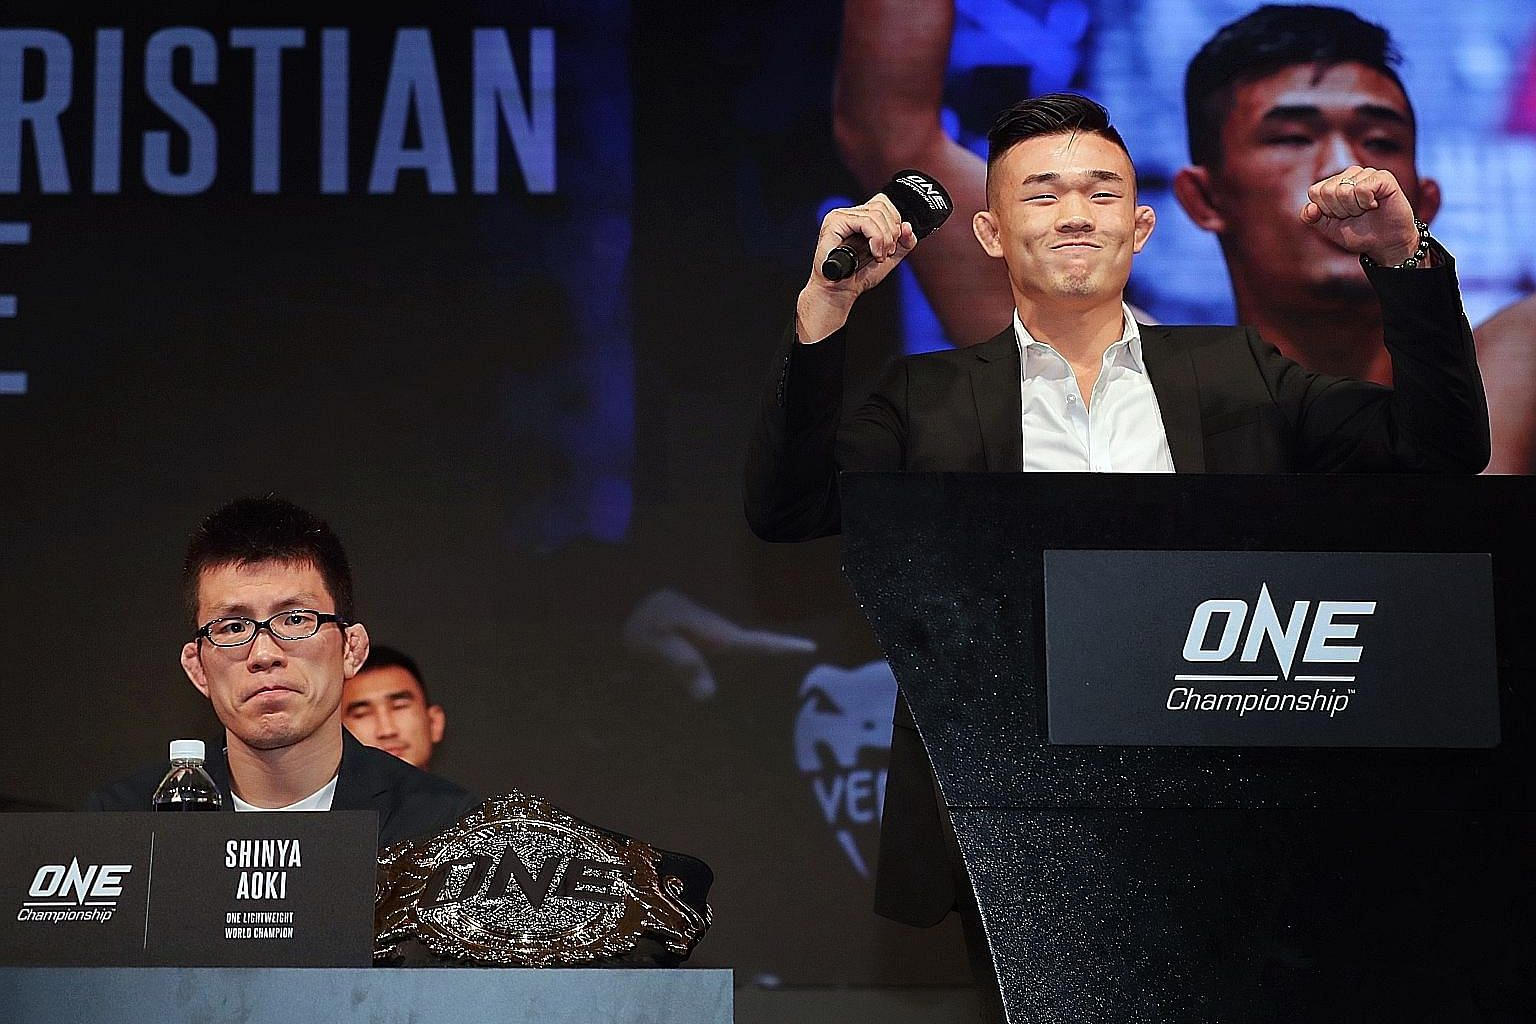 Christian Lee is upbeat on facing One's lightweight world champion Shinya Aoki on Friday, saying he has learnt and grown since losing in his first title fight a year ago.